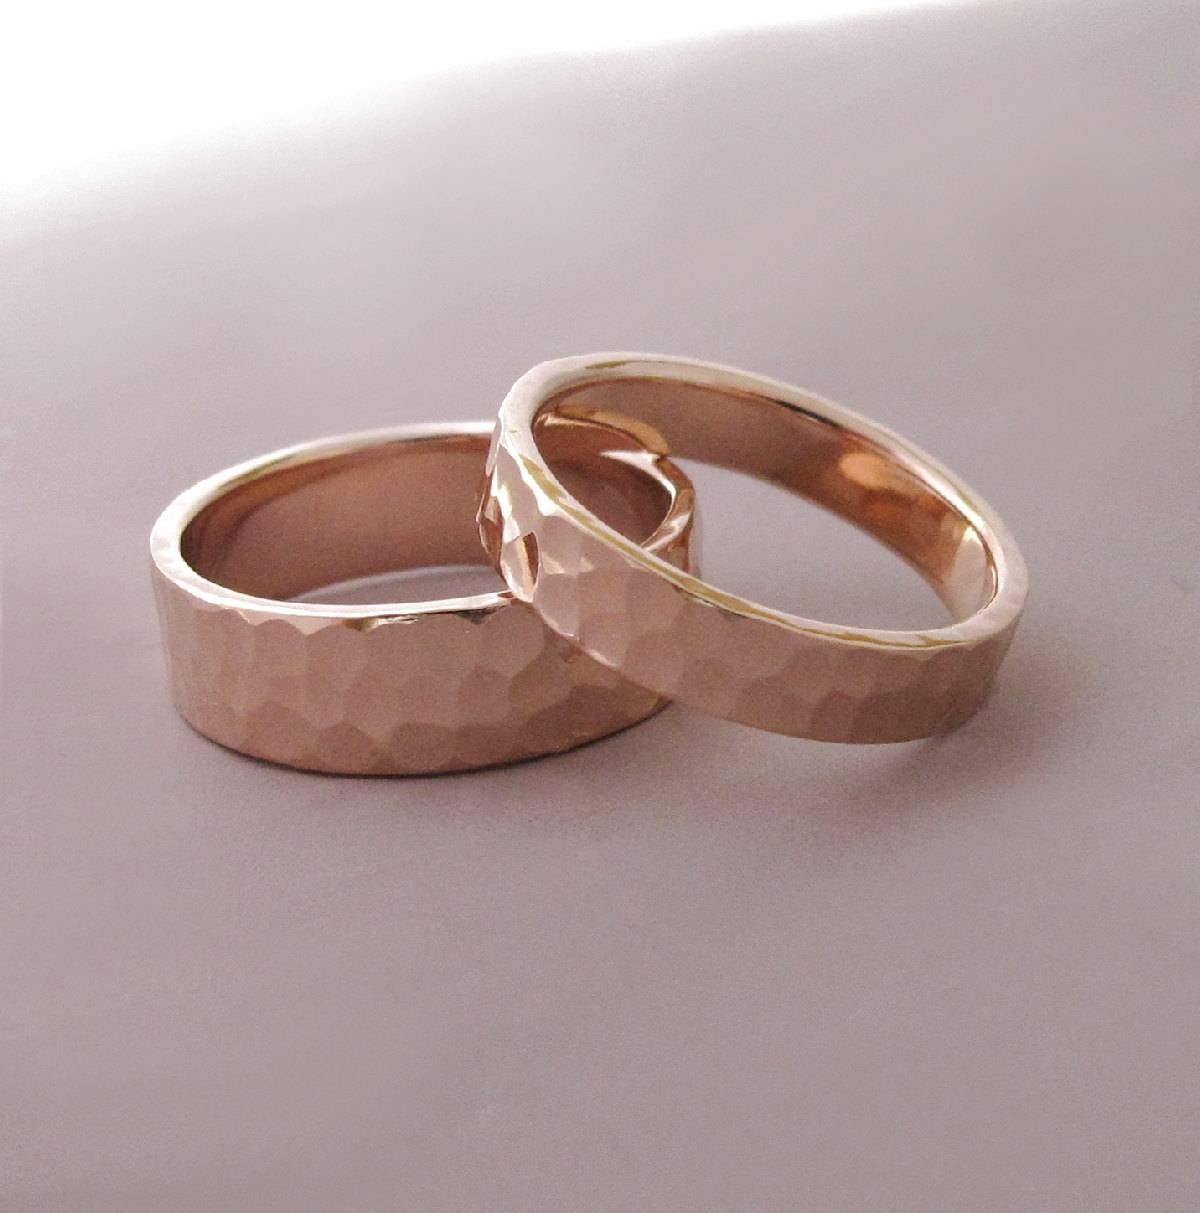 14K Rose Gold Wedding Rings Hammered Recycled Gold 4 And In Hammered Rose Gold Wedding Bands (View 4 of 15)